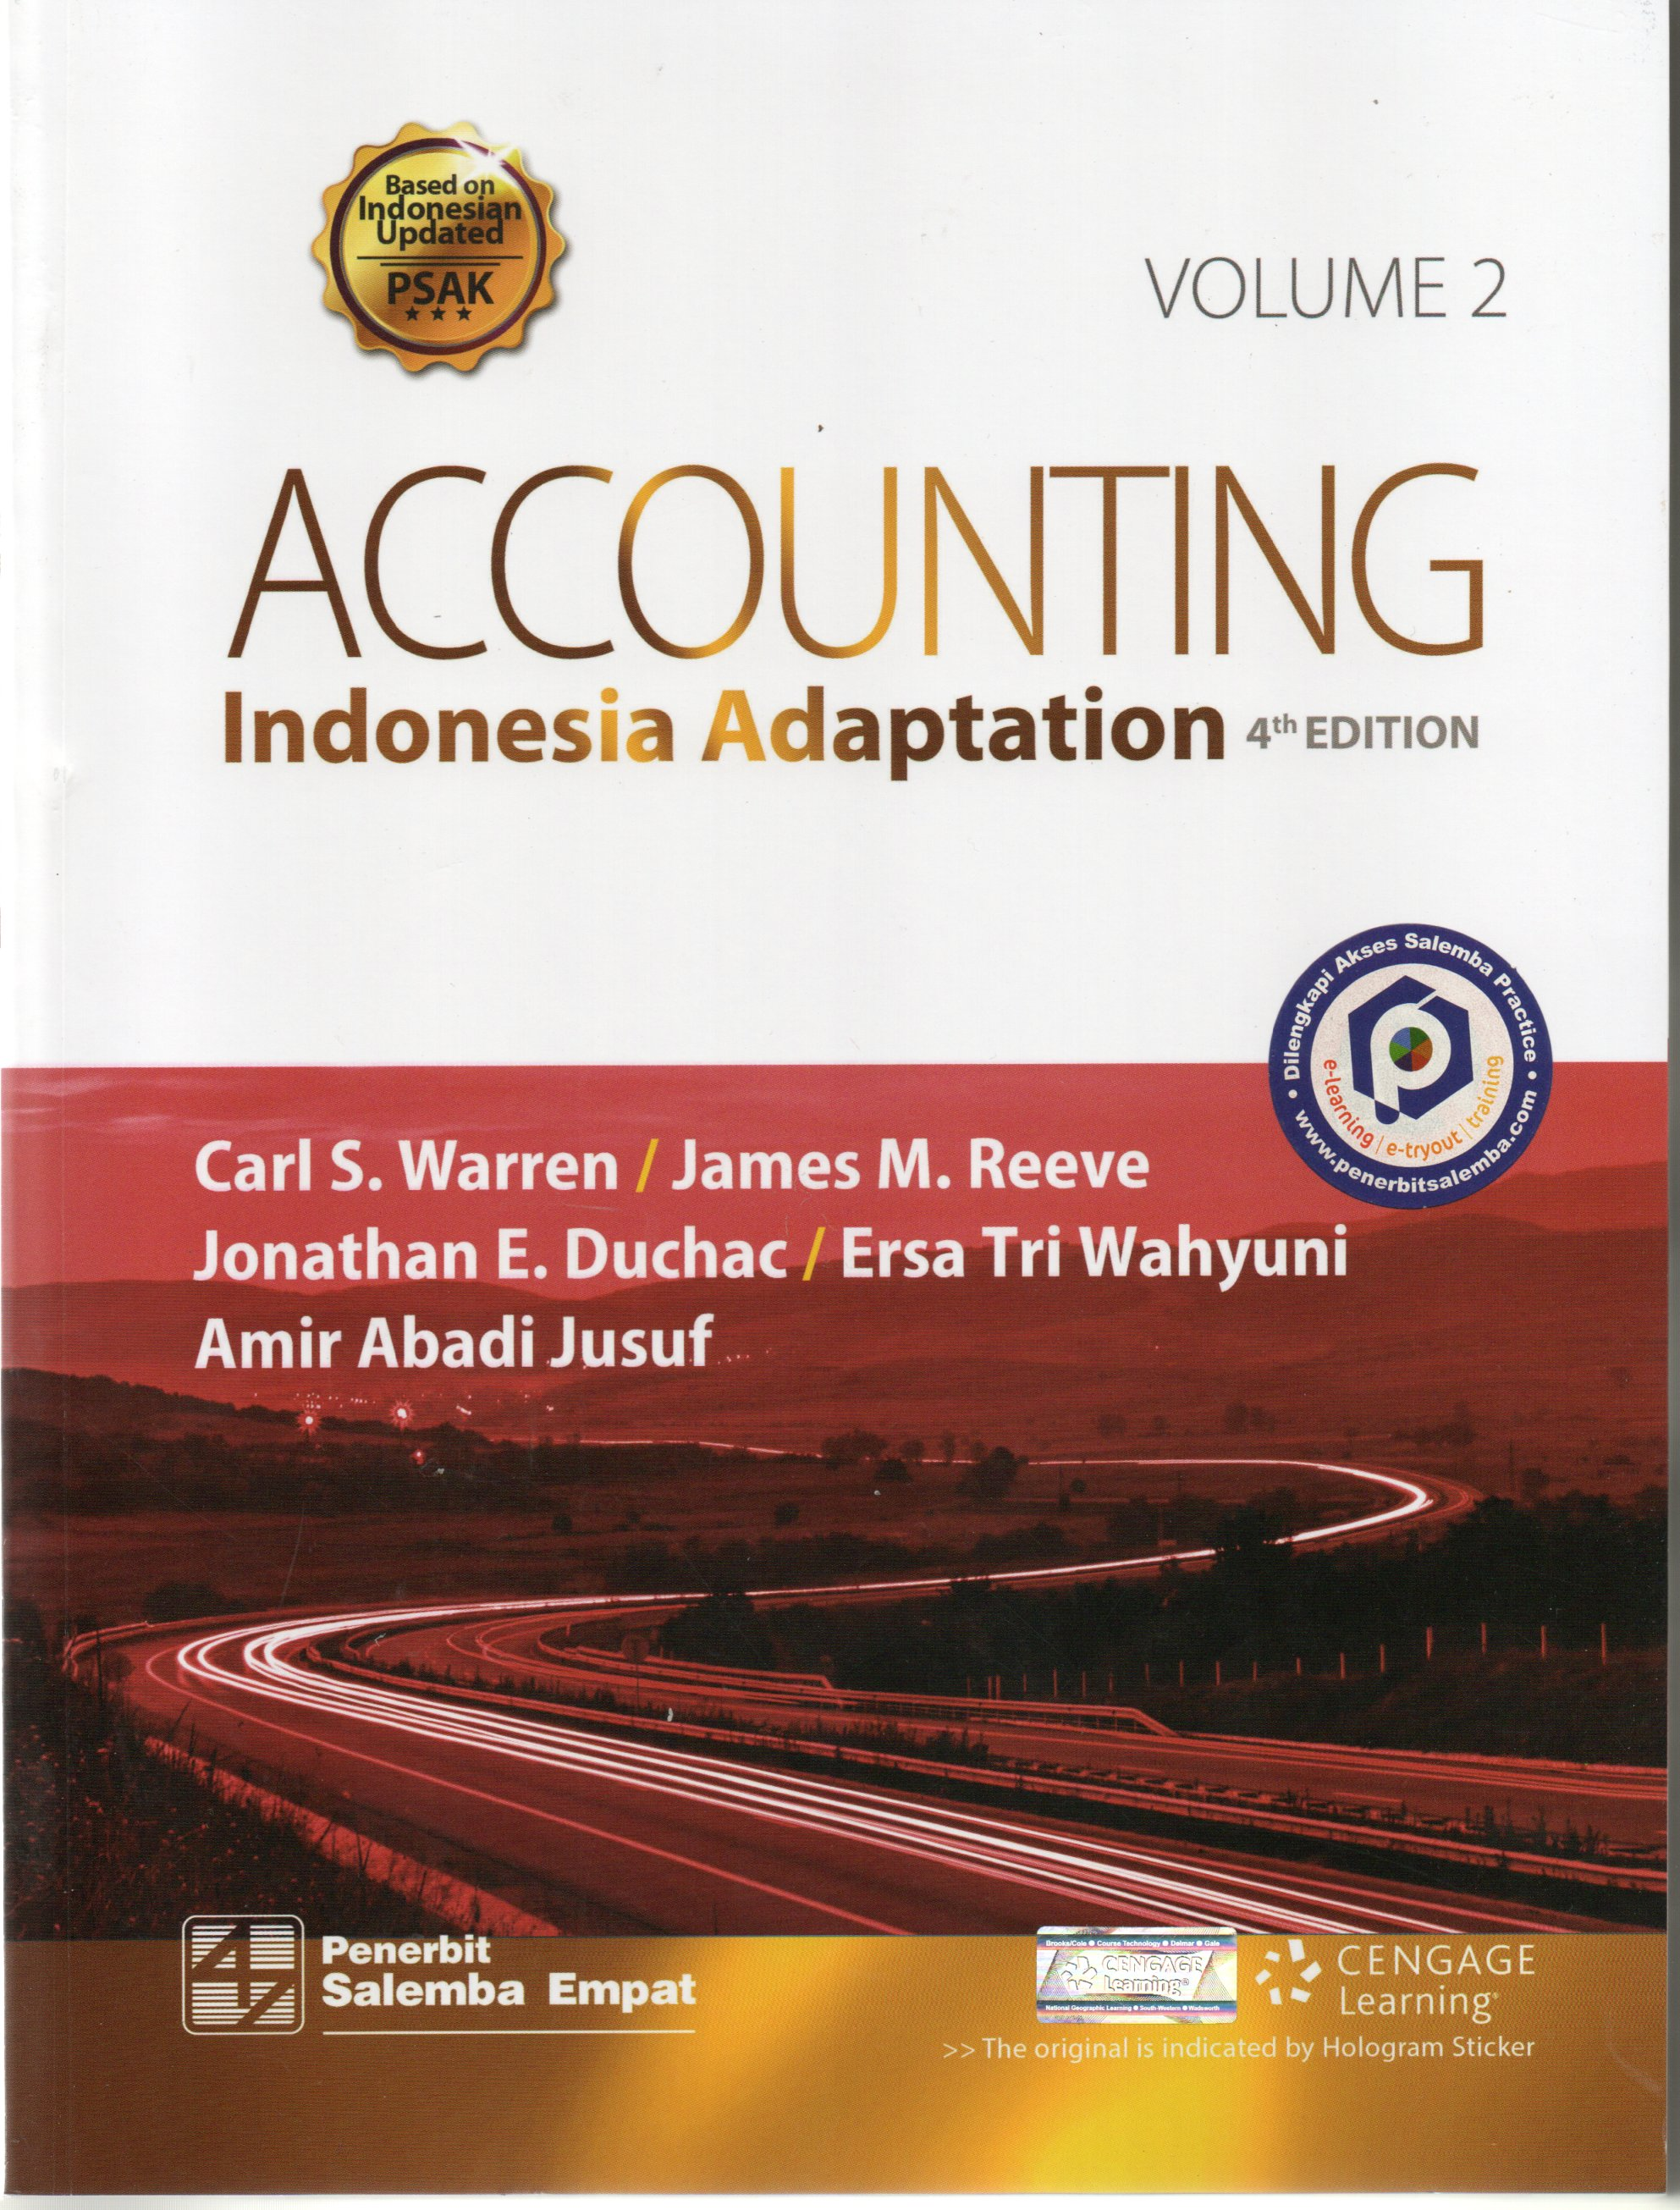 Accounting Indonesia adaption 4th ed vol 2 / Carl S. Warren